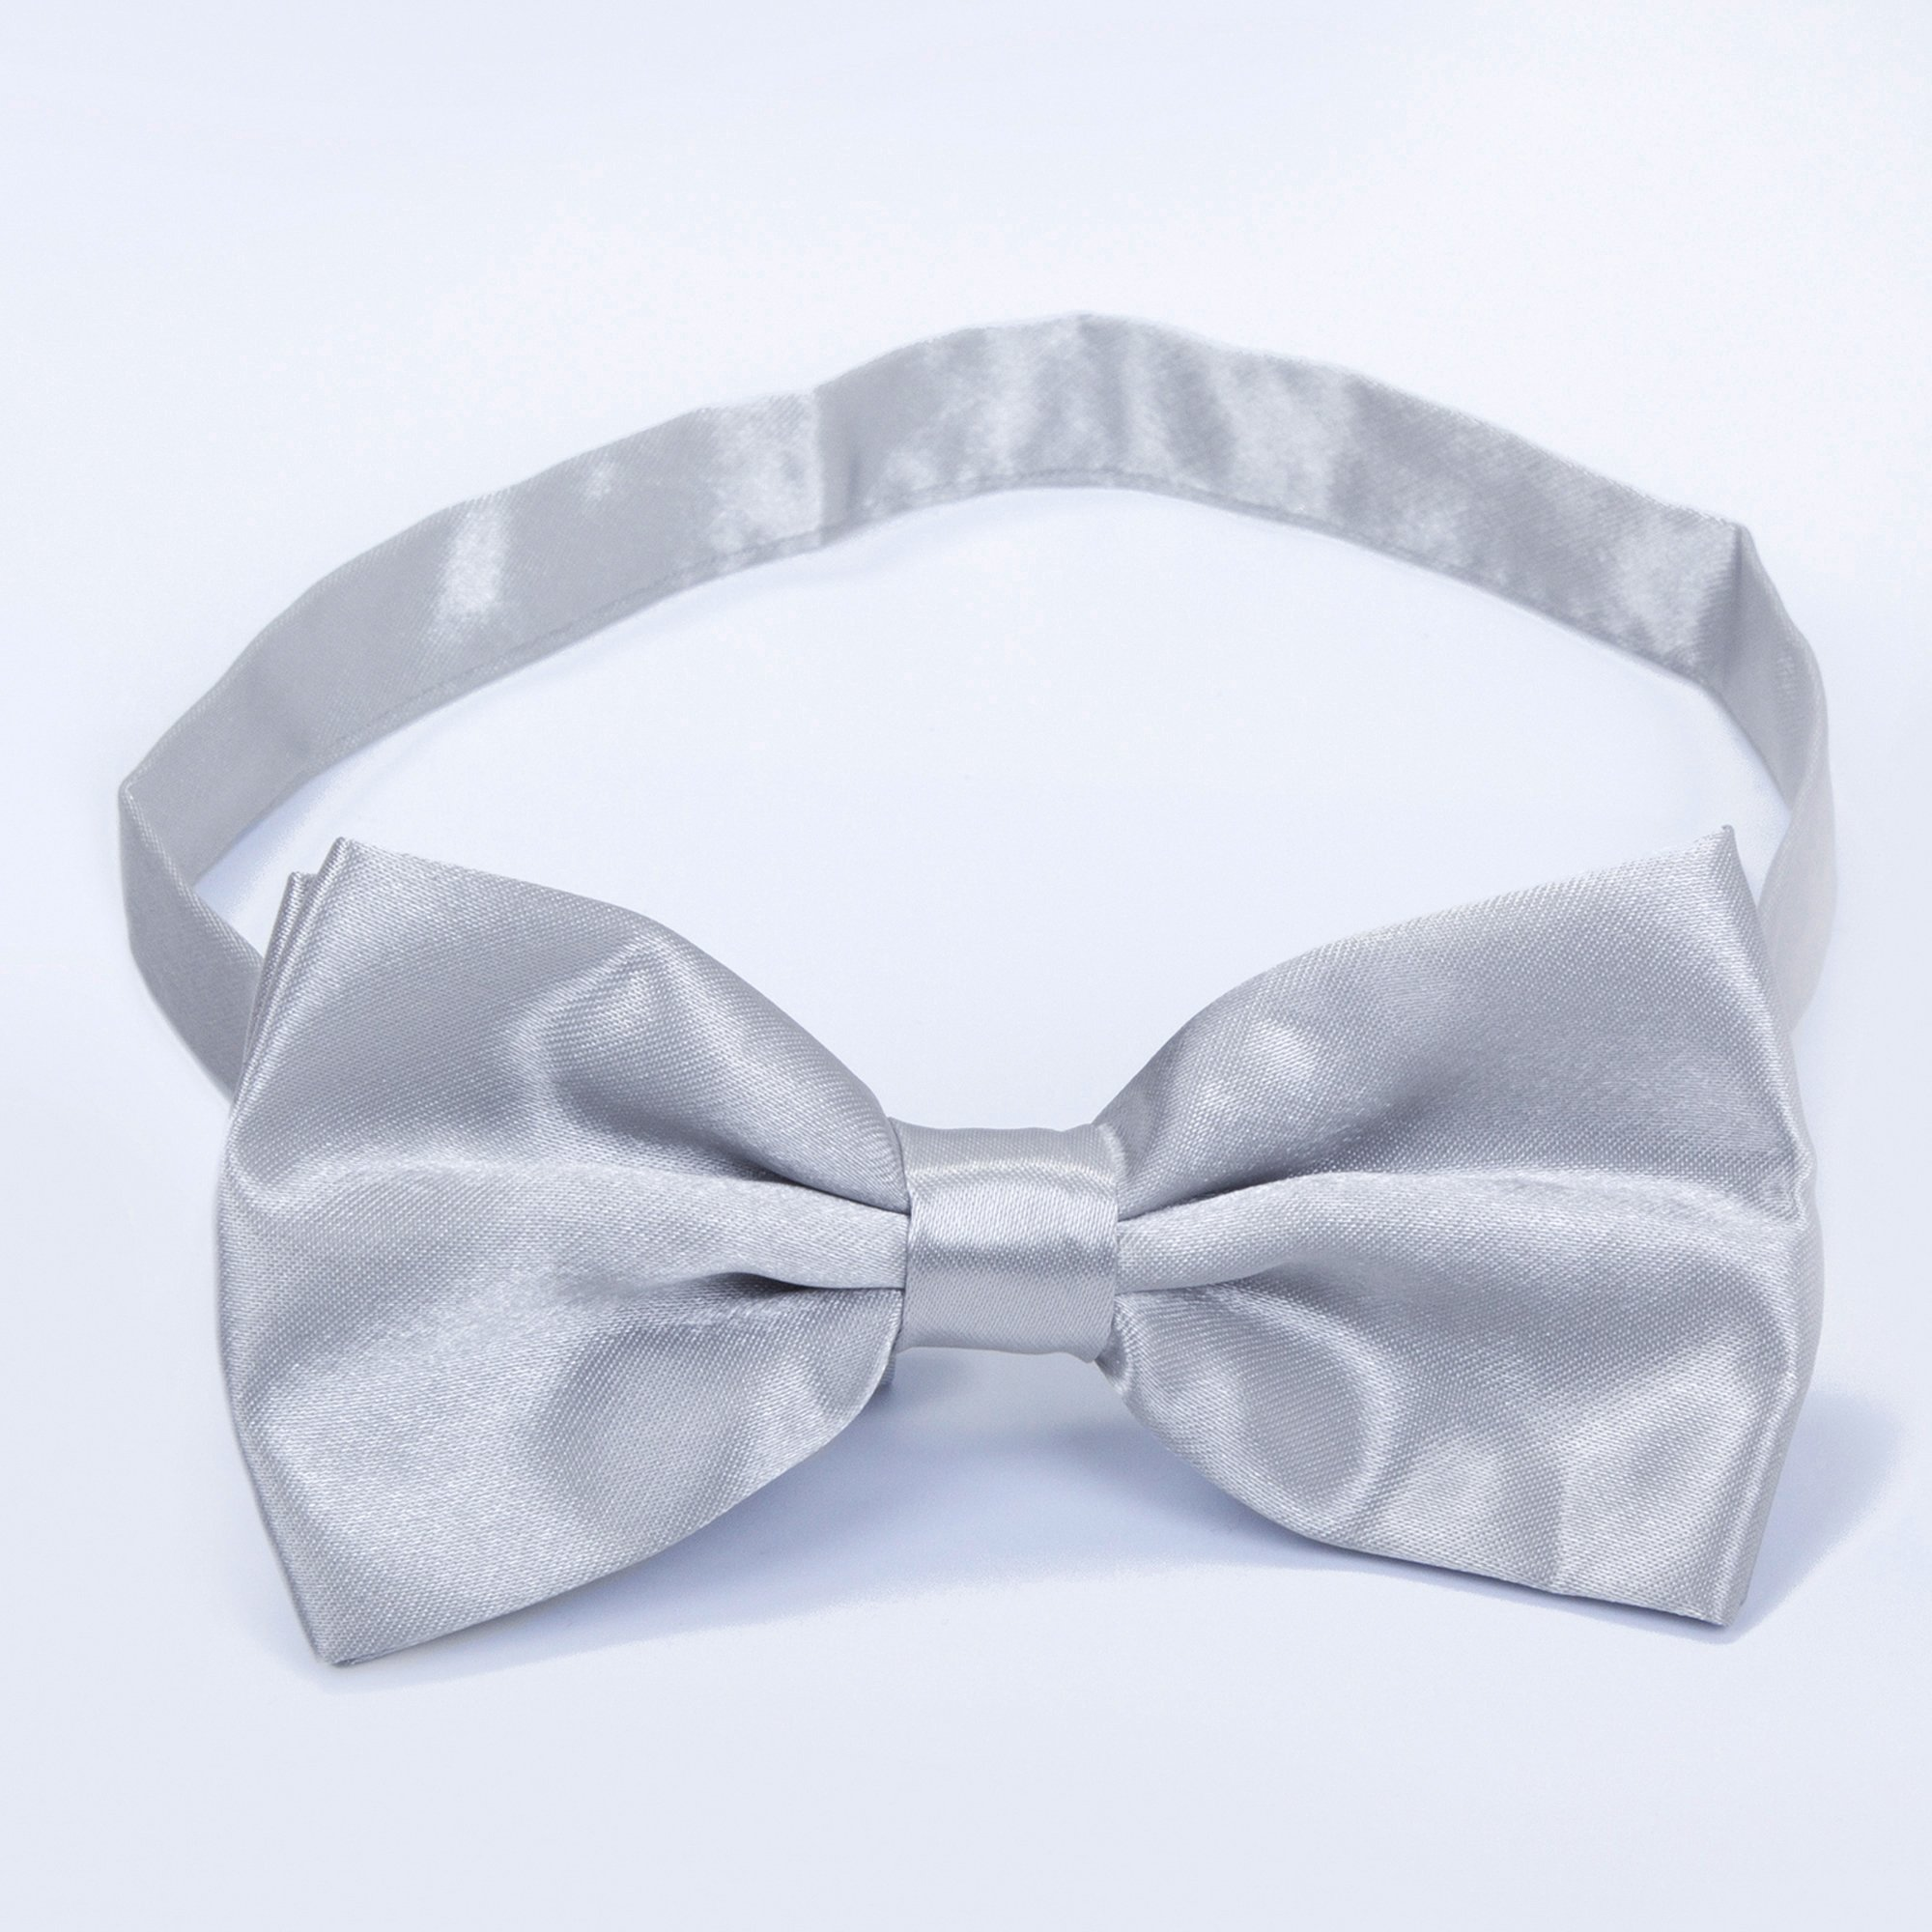 Boys Children Formal Bow Ties - 6 Pack of Solid Color Adjustable Pre Tied Bowties(Silver) by Kajeer (Image #3)